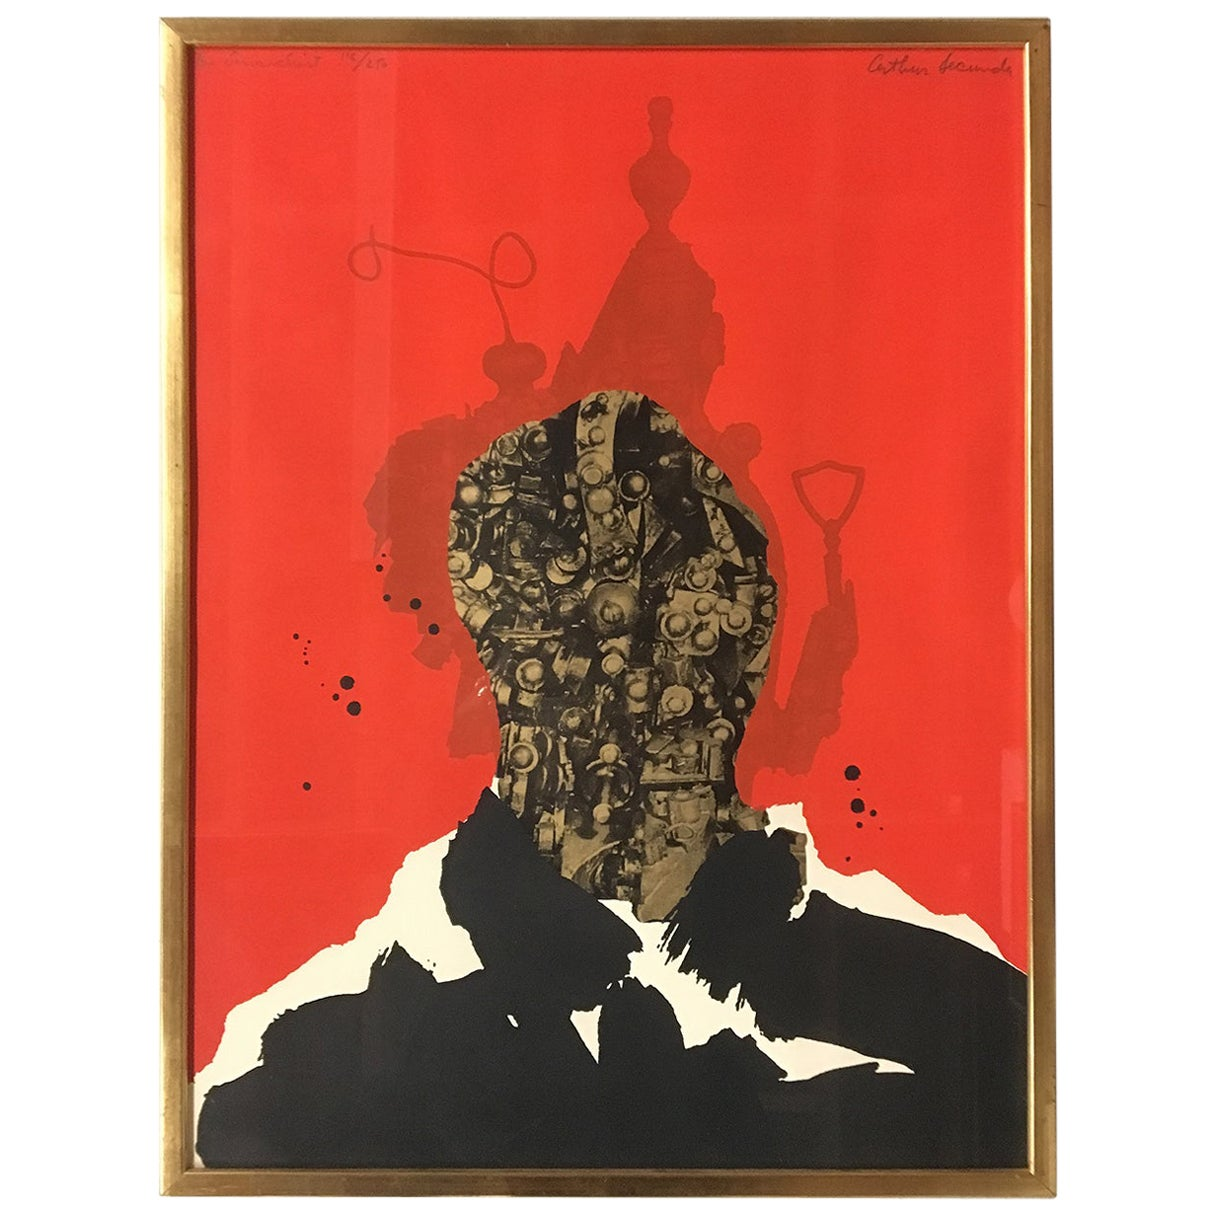 1960s Limited Edition Silkscreen Print 'The Anarchist' by Arthur Secunda